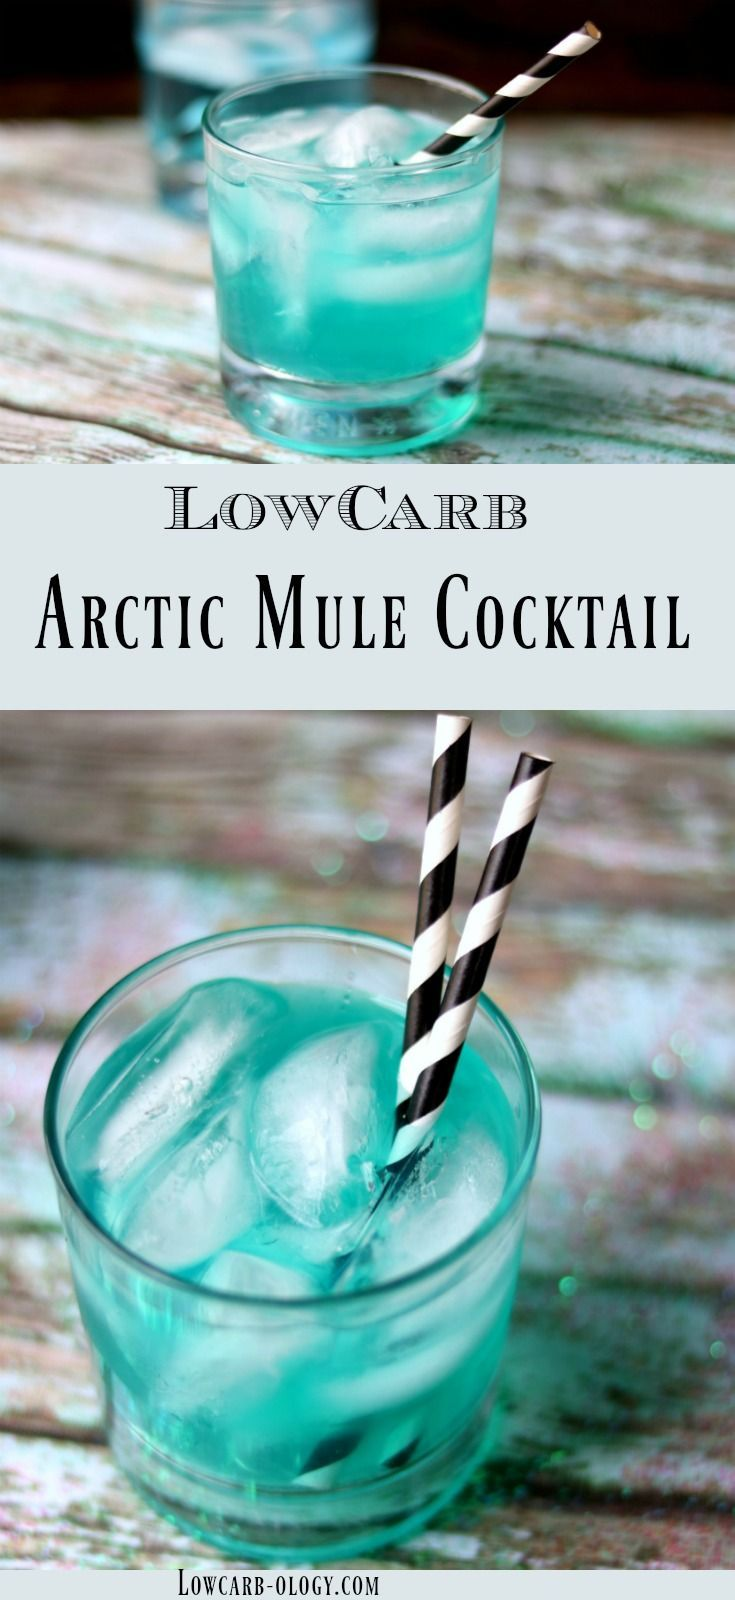 Low carb vodka cocktail recipe that's perfect for winter! This Arctic Mule is exactly what you're looking for! Icy cold vodka is blended with sugar free peppermint syrup so each sip feels like you're breathing the icy arctic air! The blue color just adds to the charm of this delicious Moscow Mule variation with 0 carbs from Lowcarb-ology.com #lowcarb #lowcarbcocktailrecipes #vodkacocktails via @Marye at Restless Chipotle